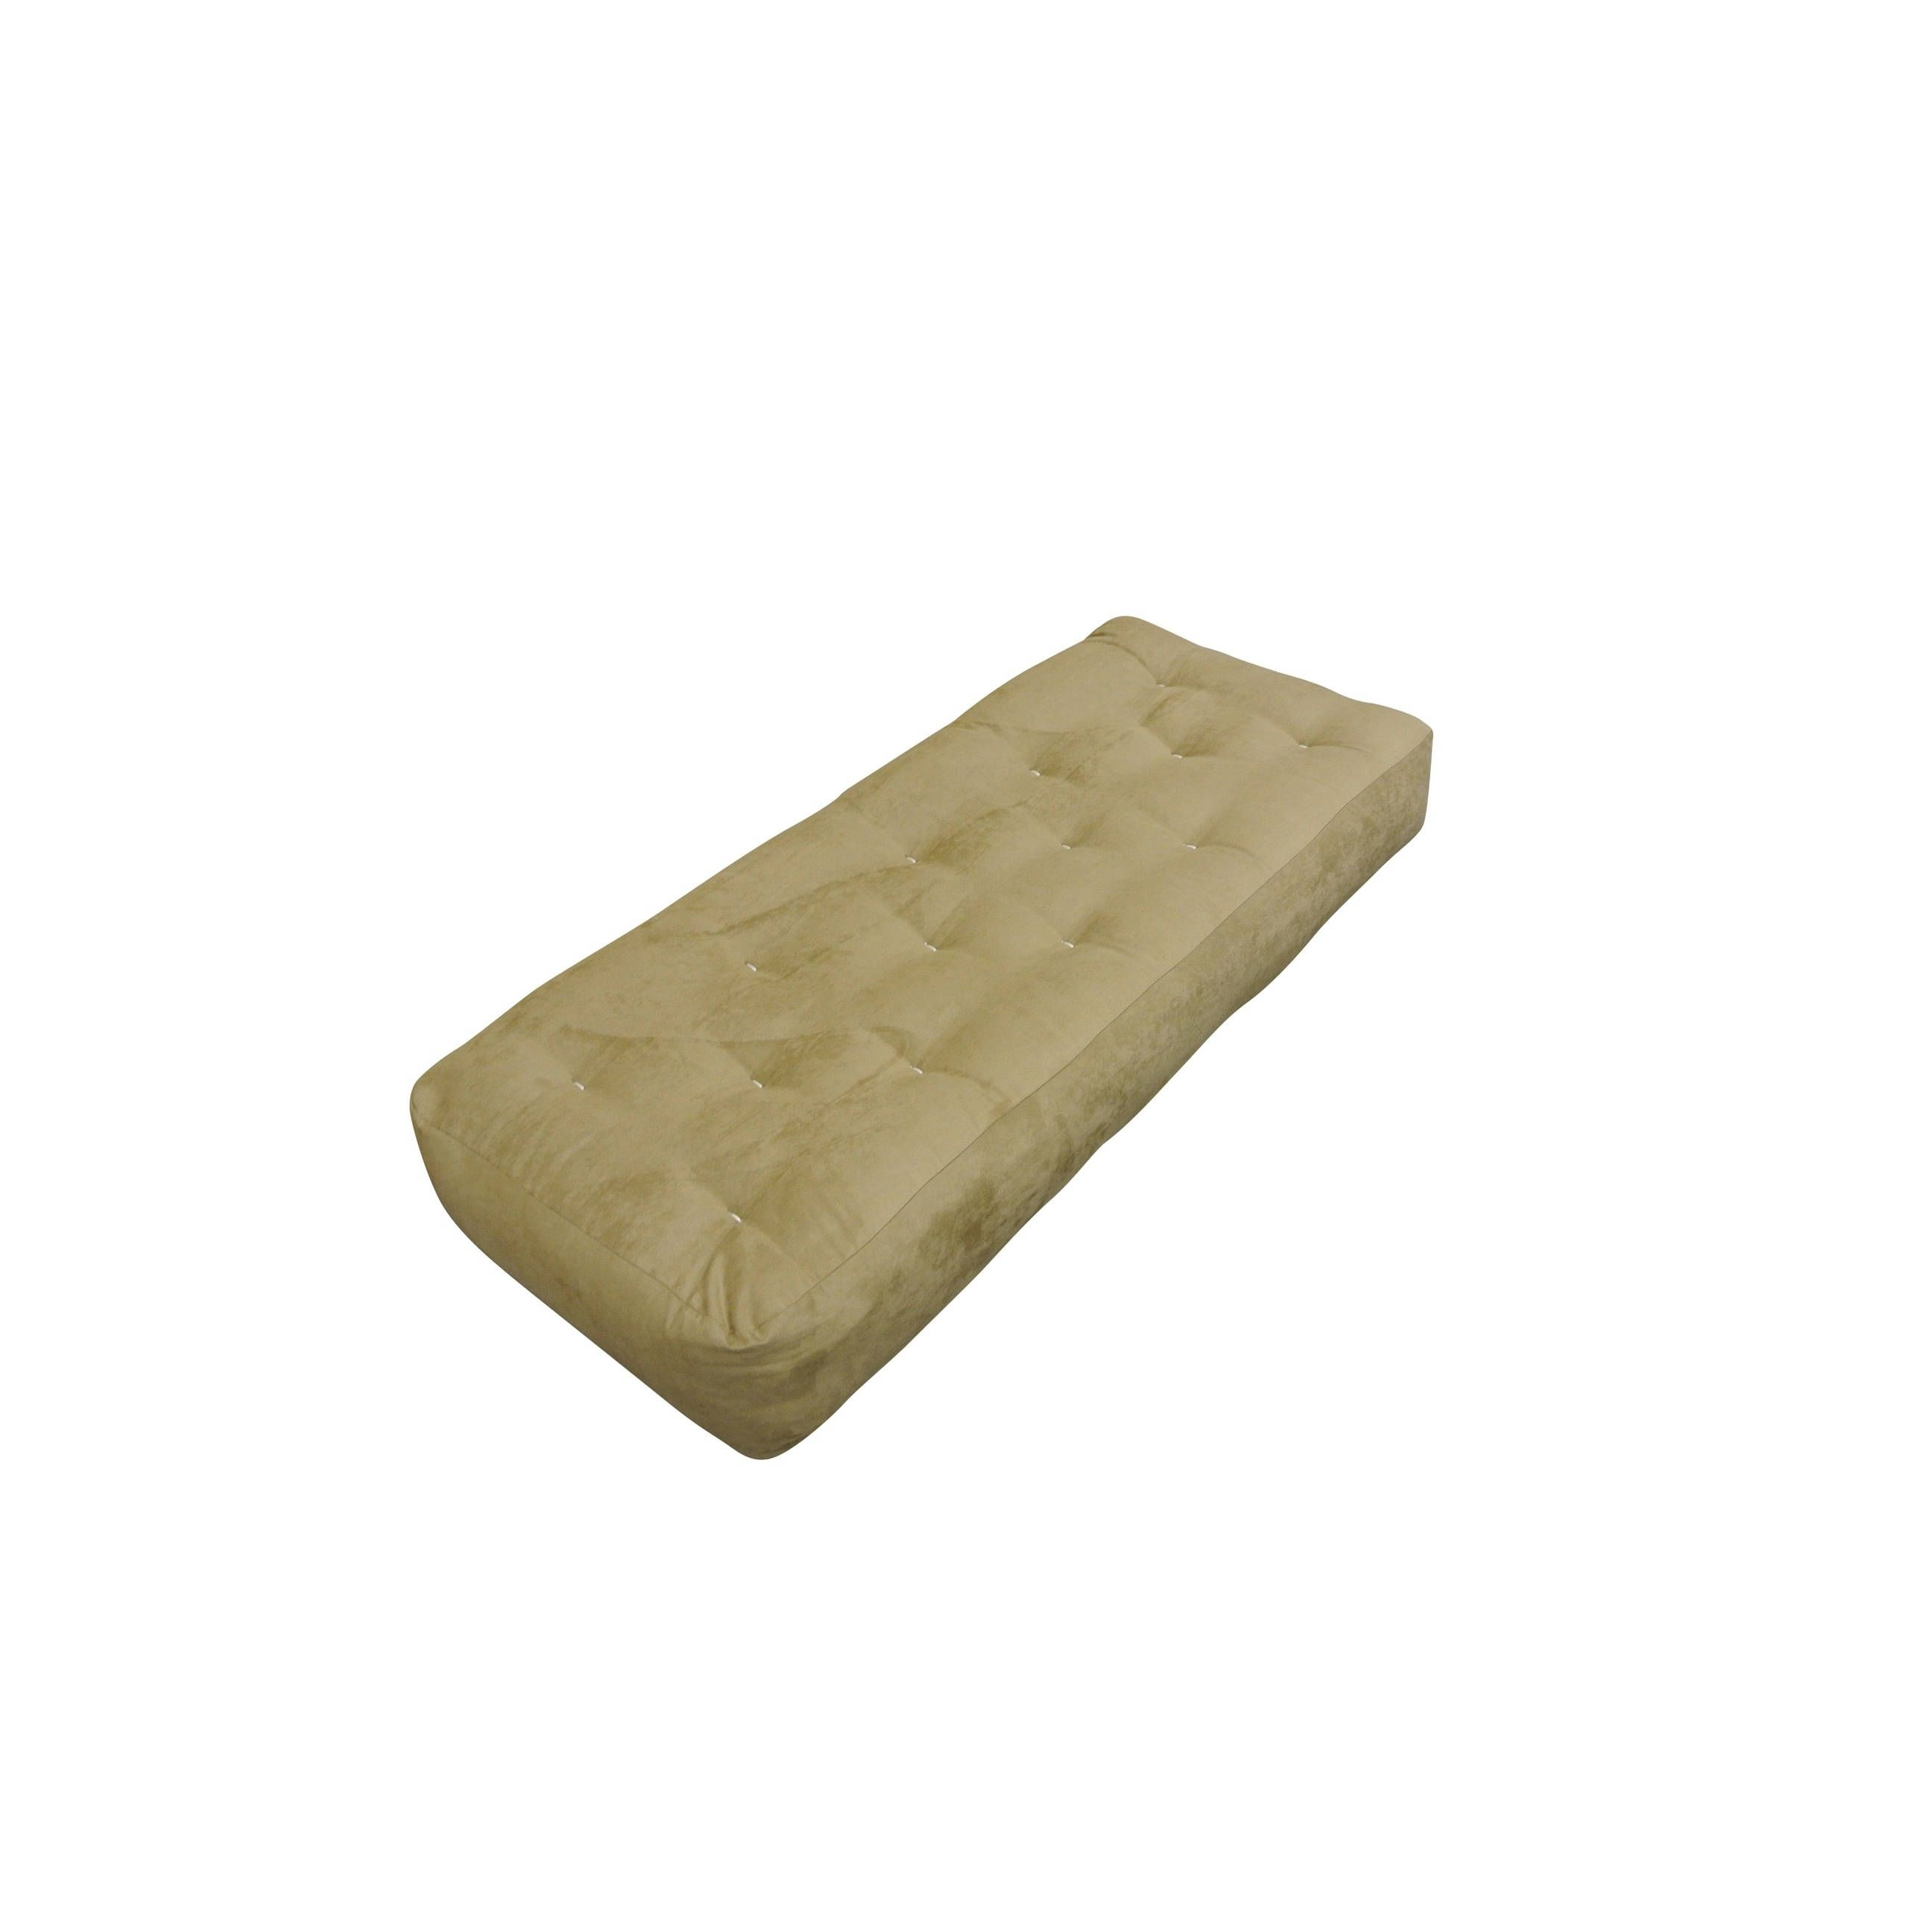 4 all cotton 21x54 loveseat ottoman chocolate microfiber futon mattress  brown   polyester cotton 4 all cotton 21x54 loveseat ottoman chocolate microfiber futon      rh   pinterest